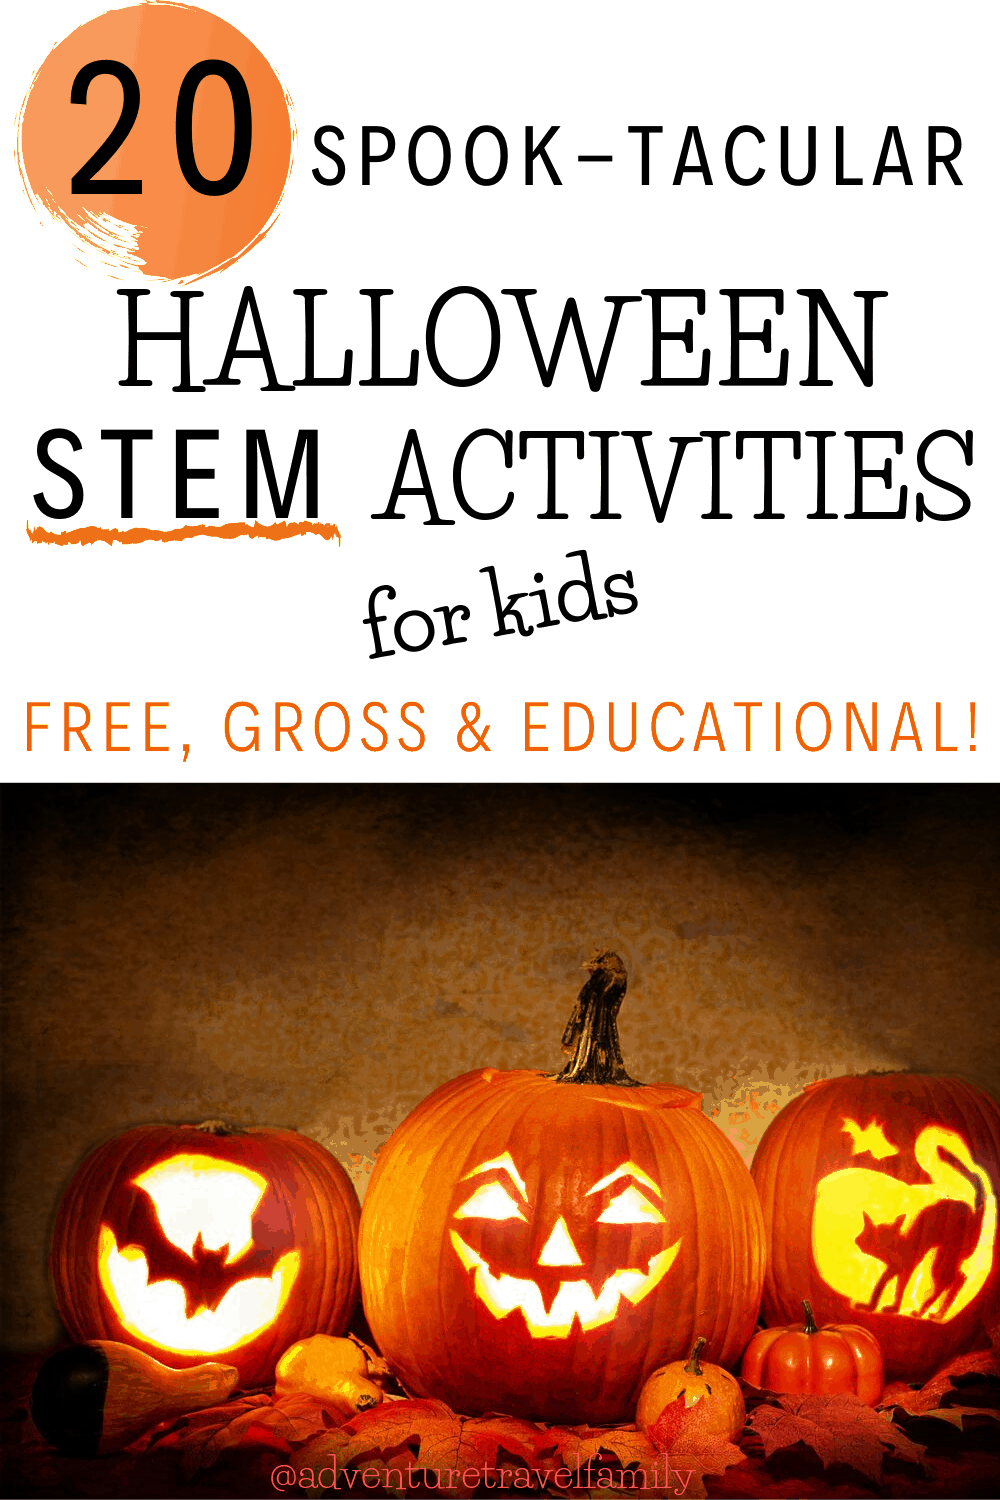 20 Spooktacular Halloween Activities For Kids Stem Education Halloween Science Adventure Travel Family